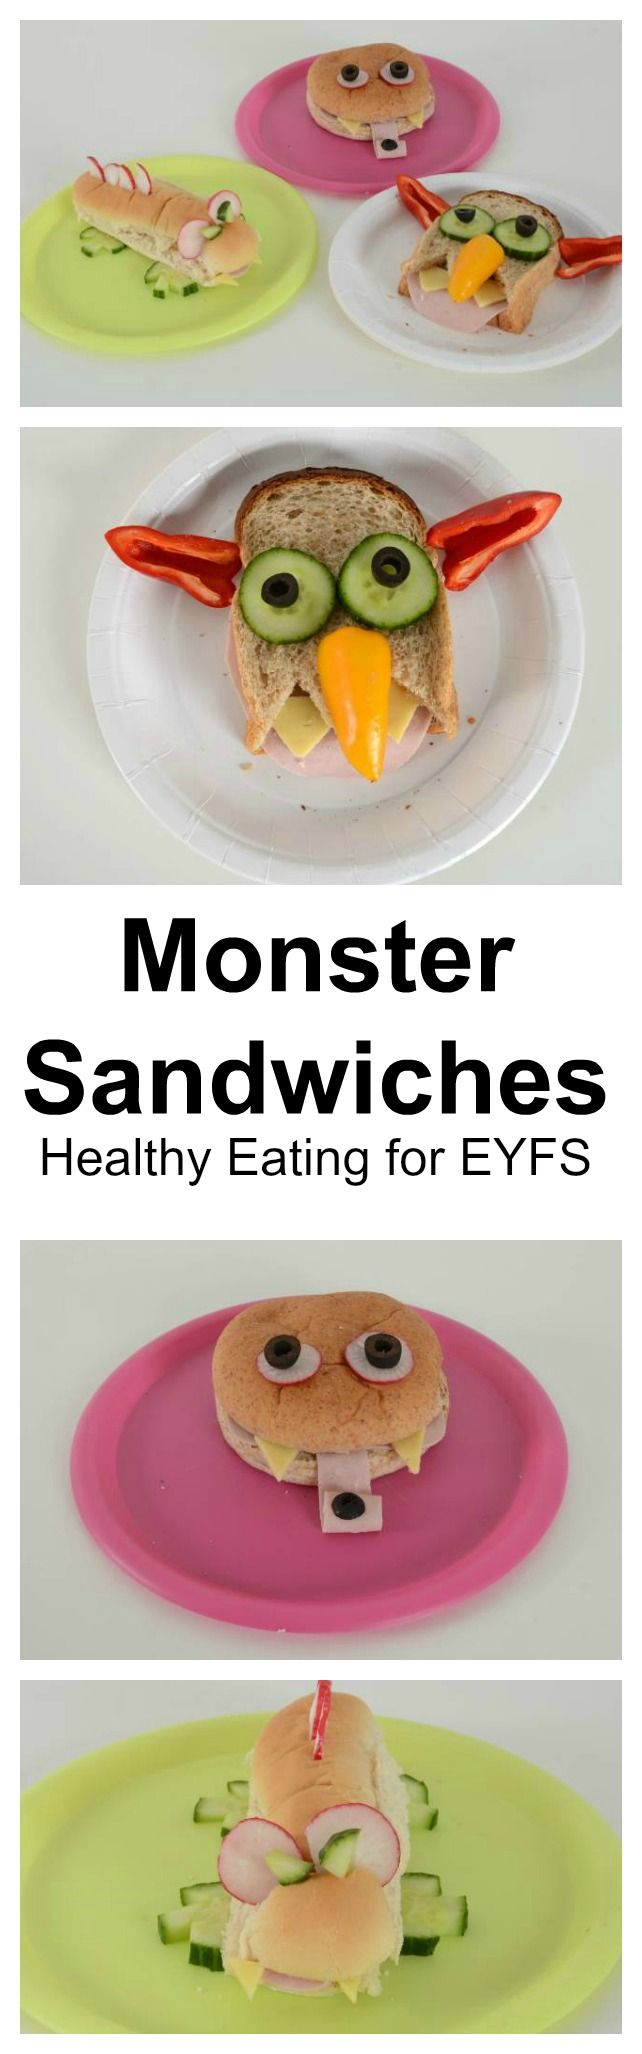 #LearningIsFun Monster sandwiches a healthy eating activity for EYFS